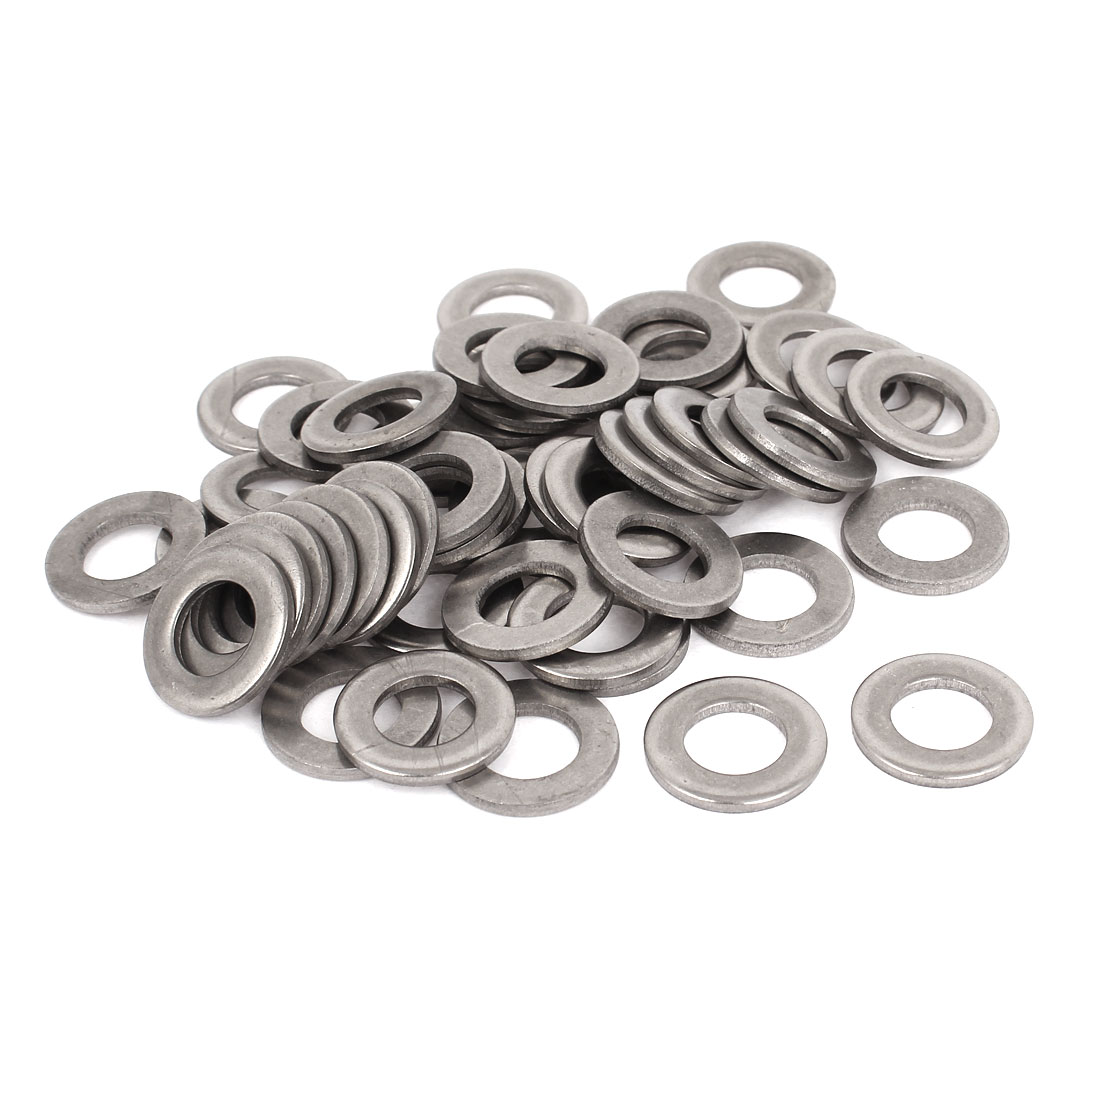 "50pcs Silver Tone 316 Stainless Steel Flat Washer 1/2"" for Screws Bolts"